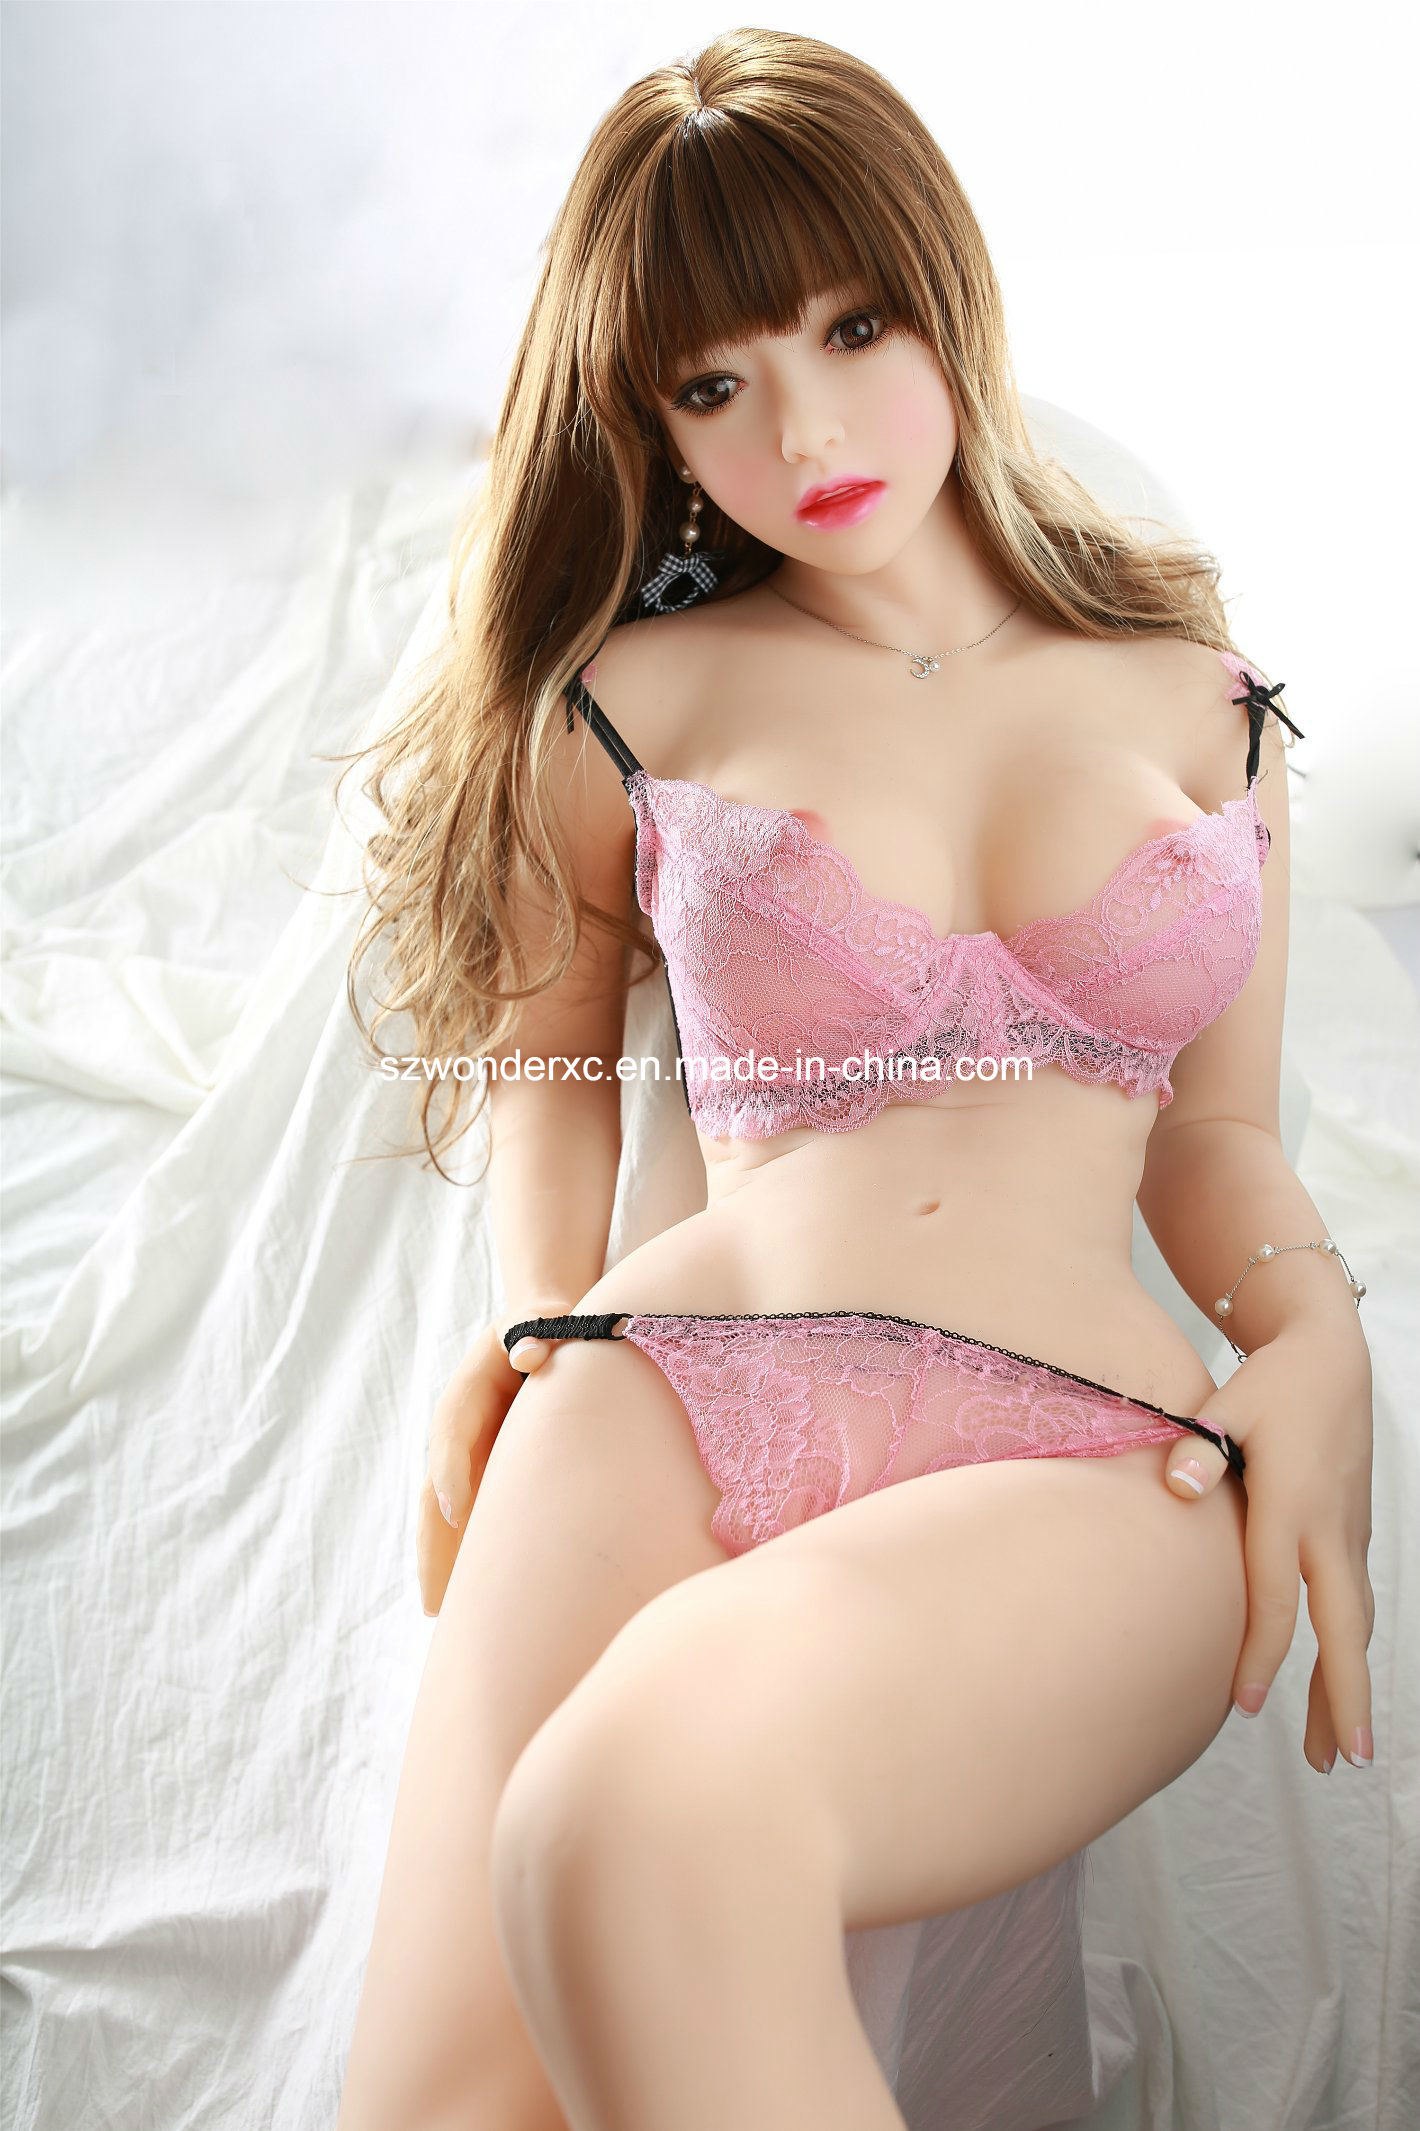 156cm Silicone Big Breast Big Ass Sex Doll Adult Chubby Sex Toys Real Vagina Love Sexy Dolls Sexy Chest Boobs Butts For Men